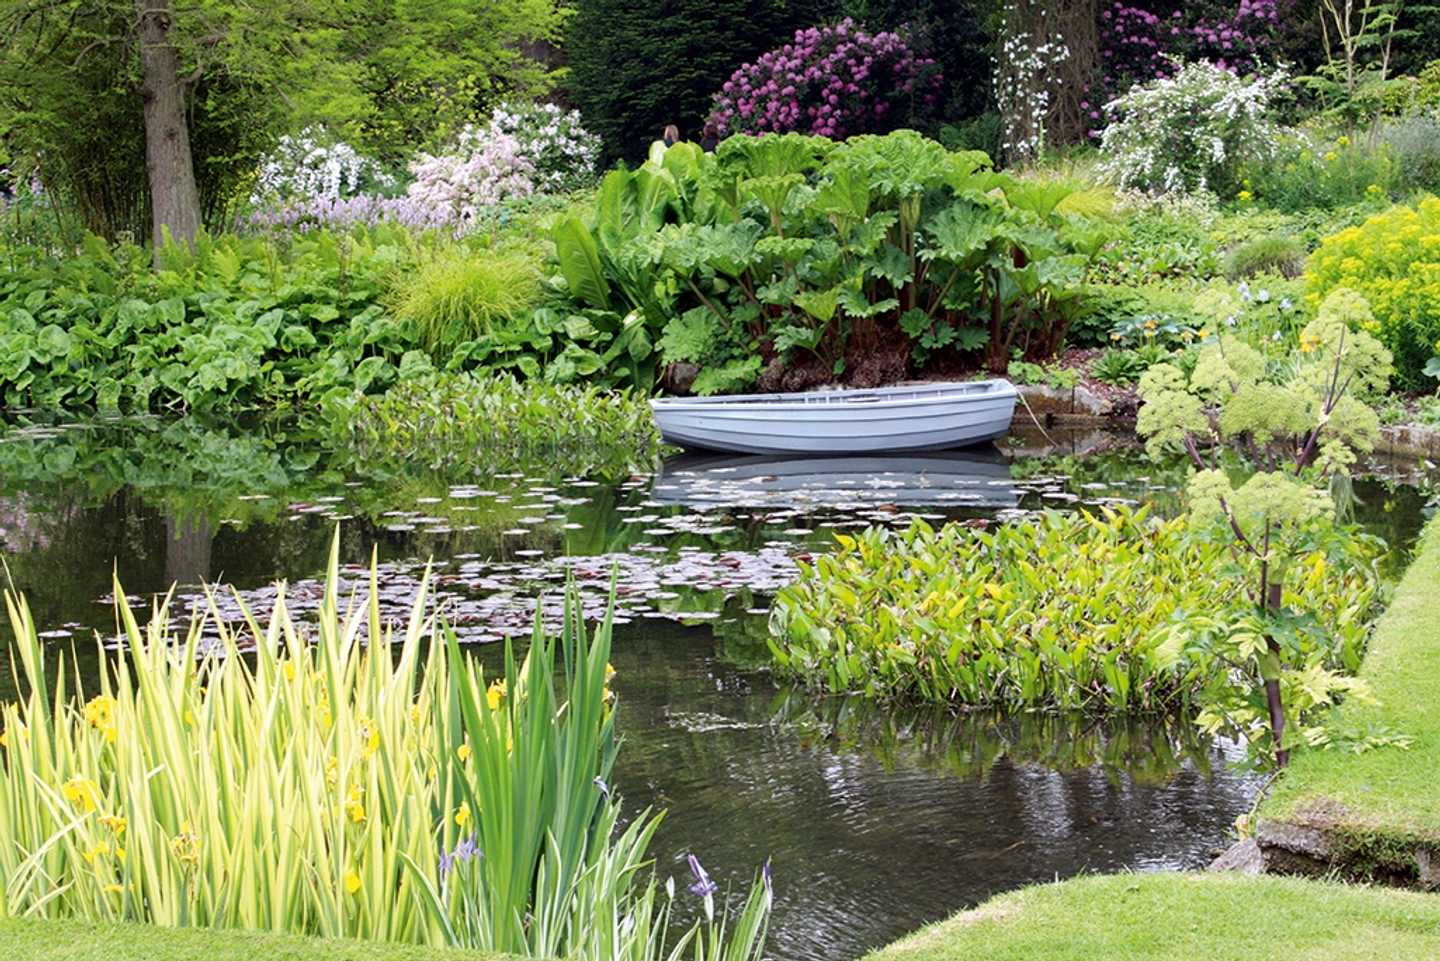 A boat on the lake in Beth Chatto Gardens